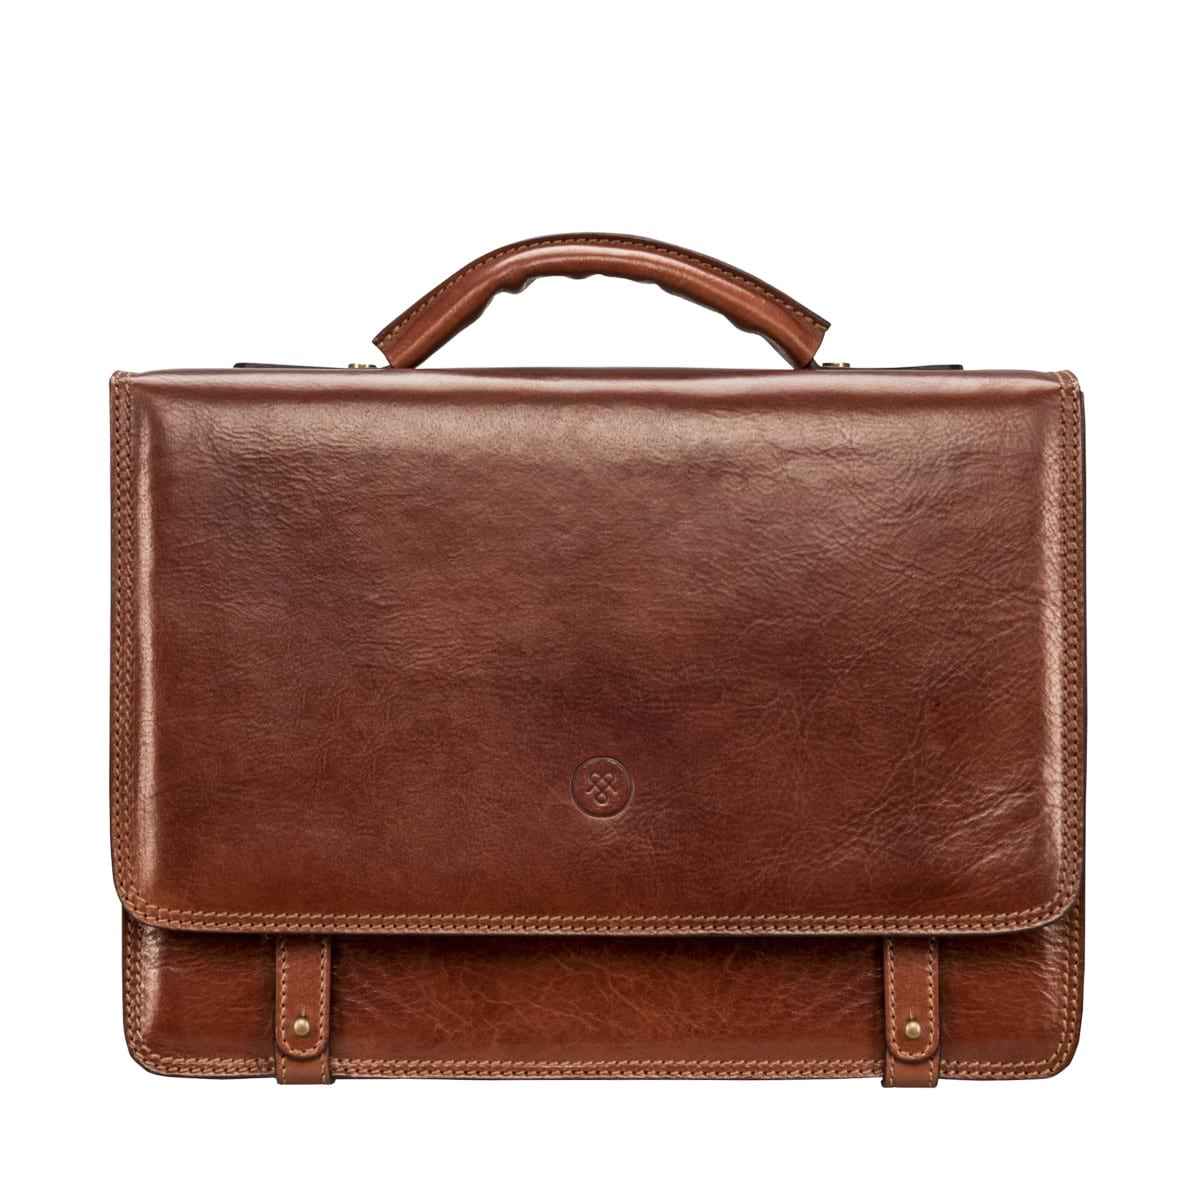 luxury leather briefcase photo - 1